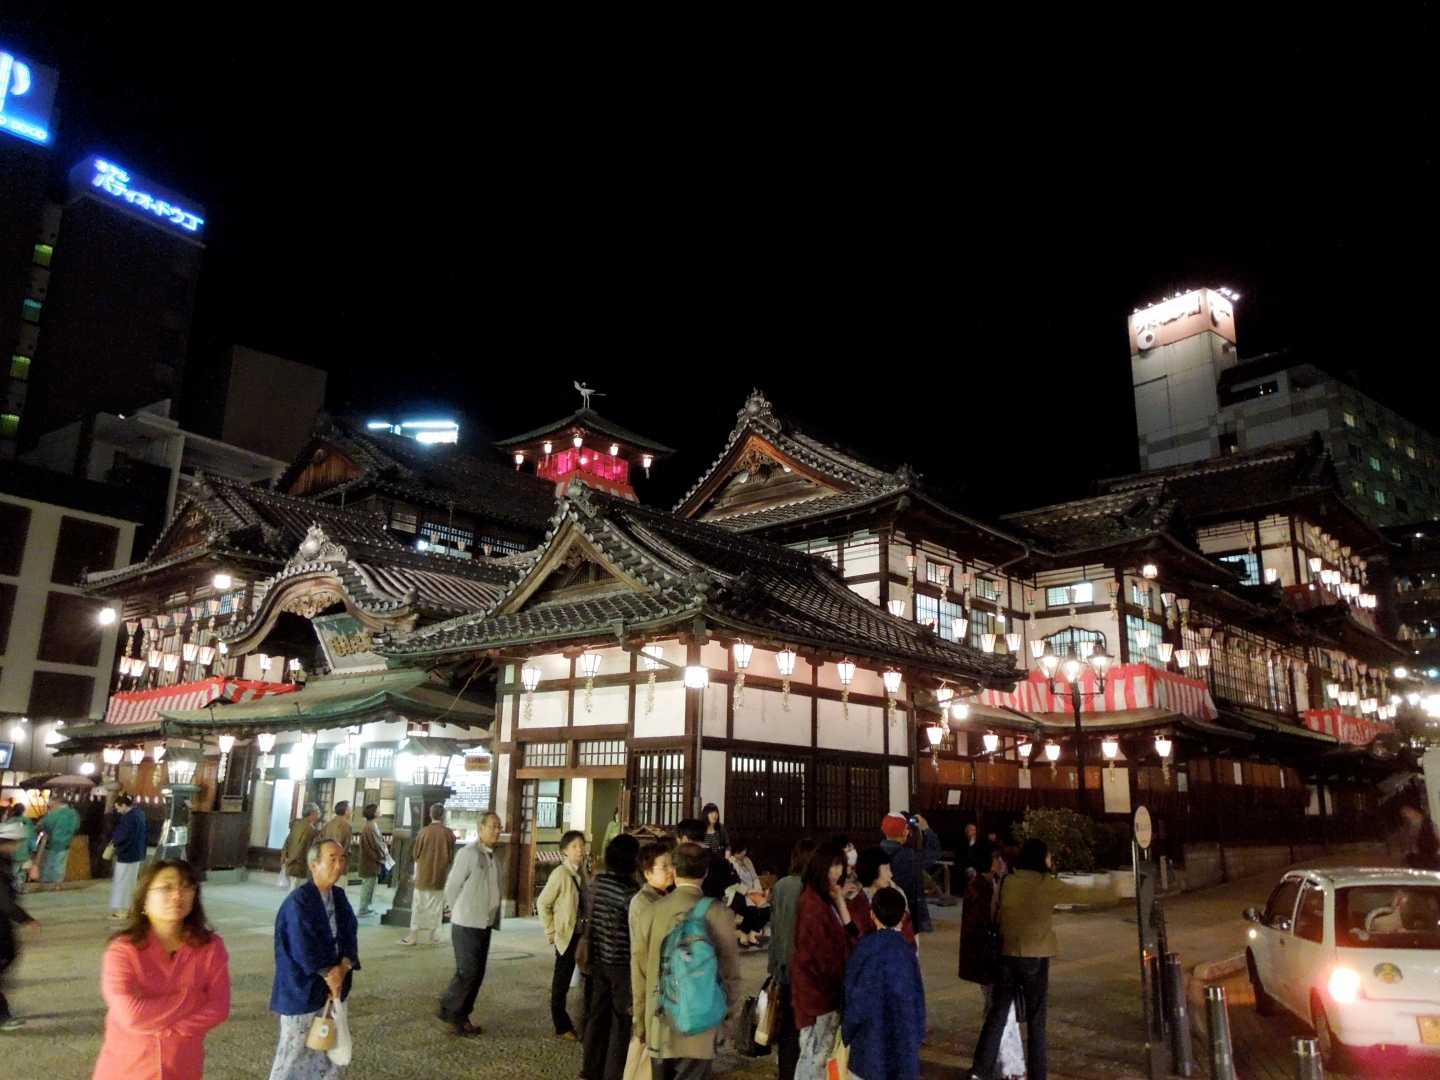 The oldest onsen in the world, Dogo Onsen.